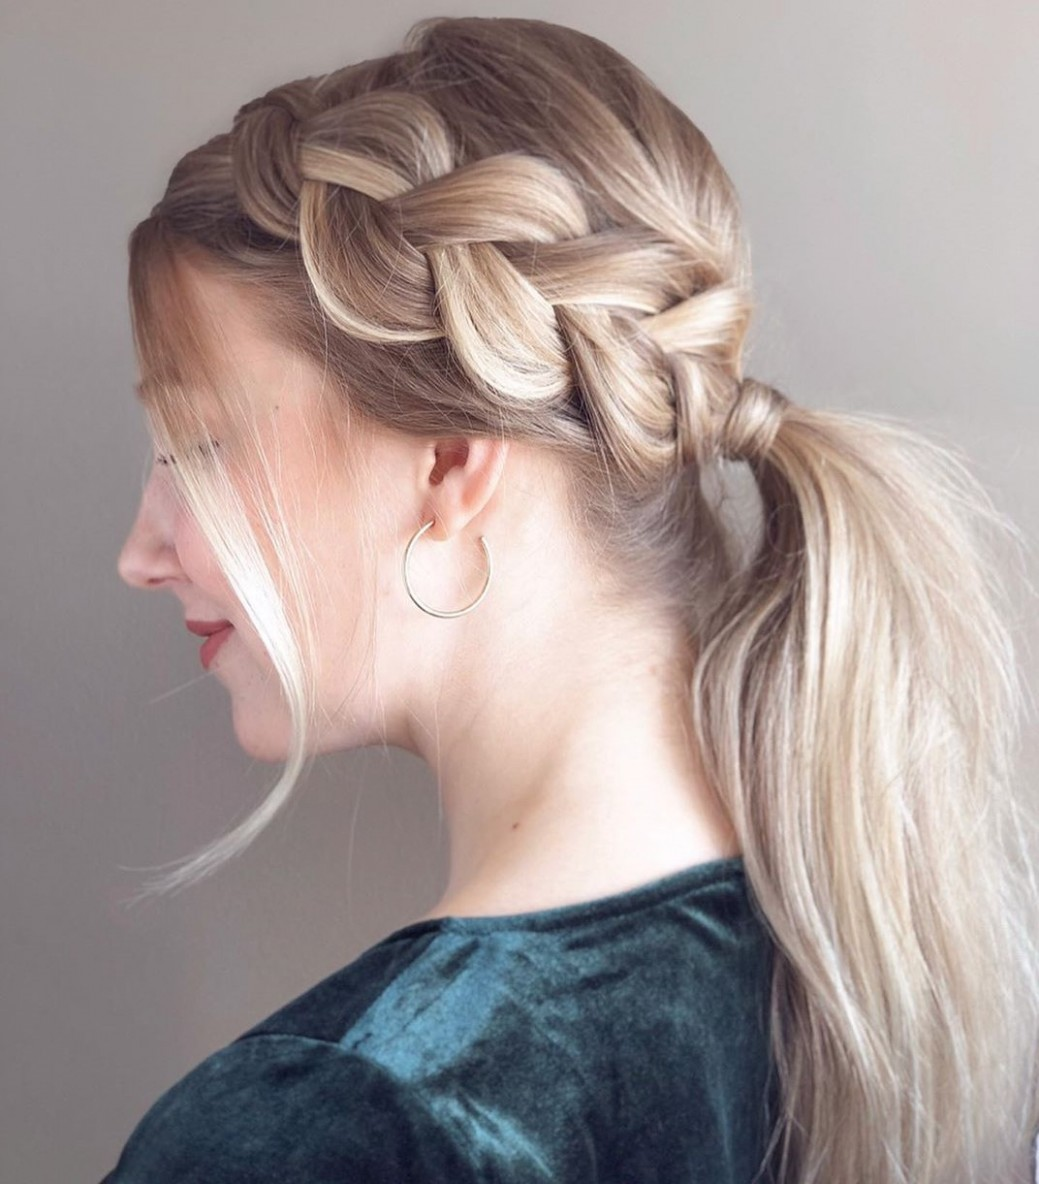 8 Easy Hairstyles For Long Hair With Simple Instructions Hair Hairstyles For Long Straight Hair